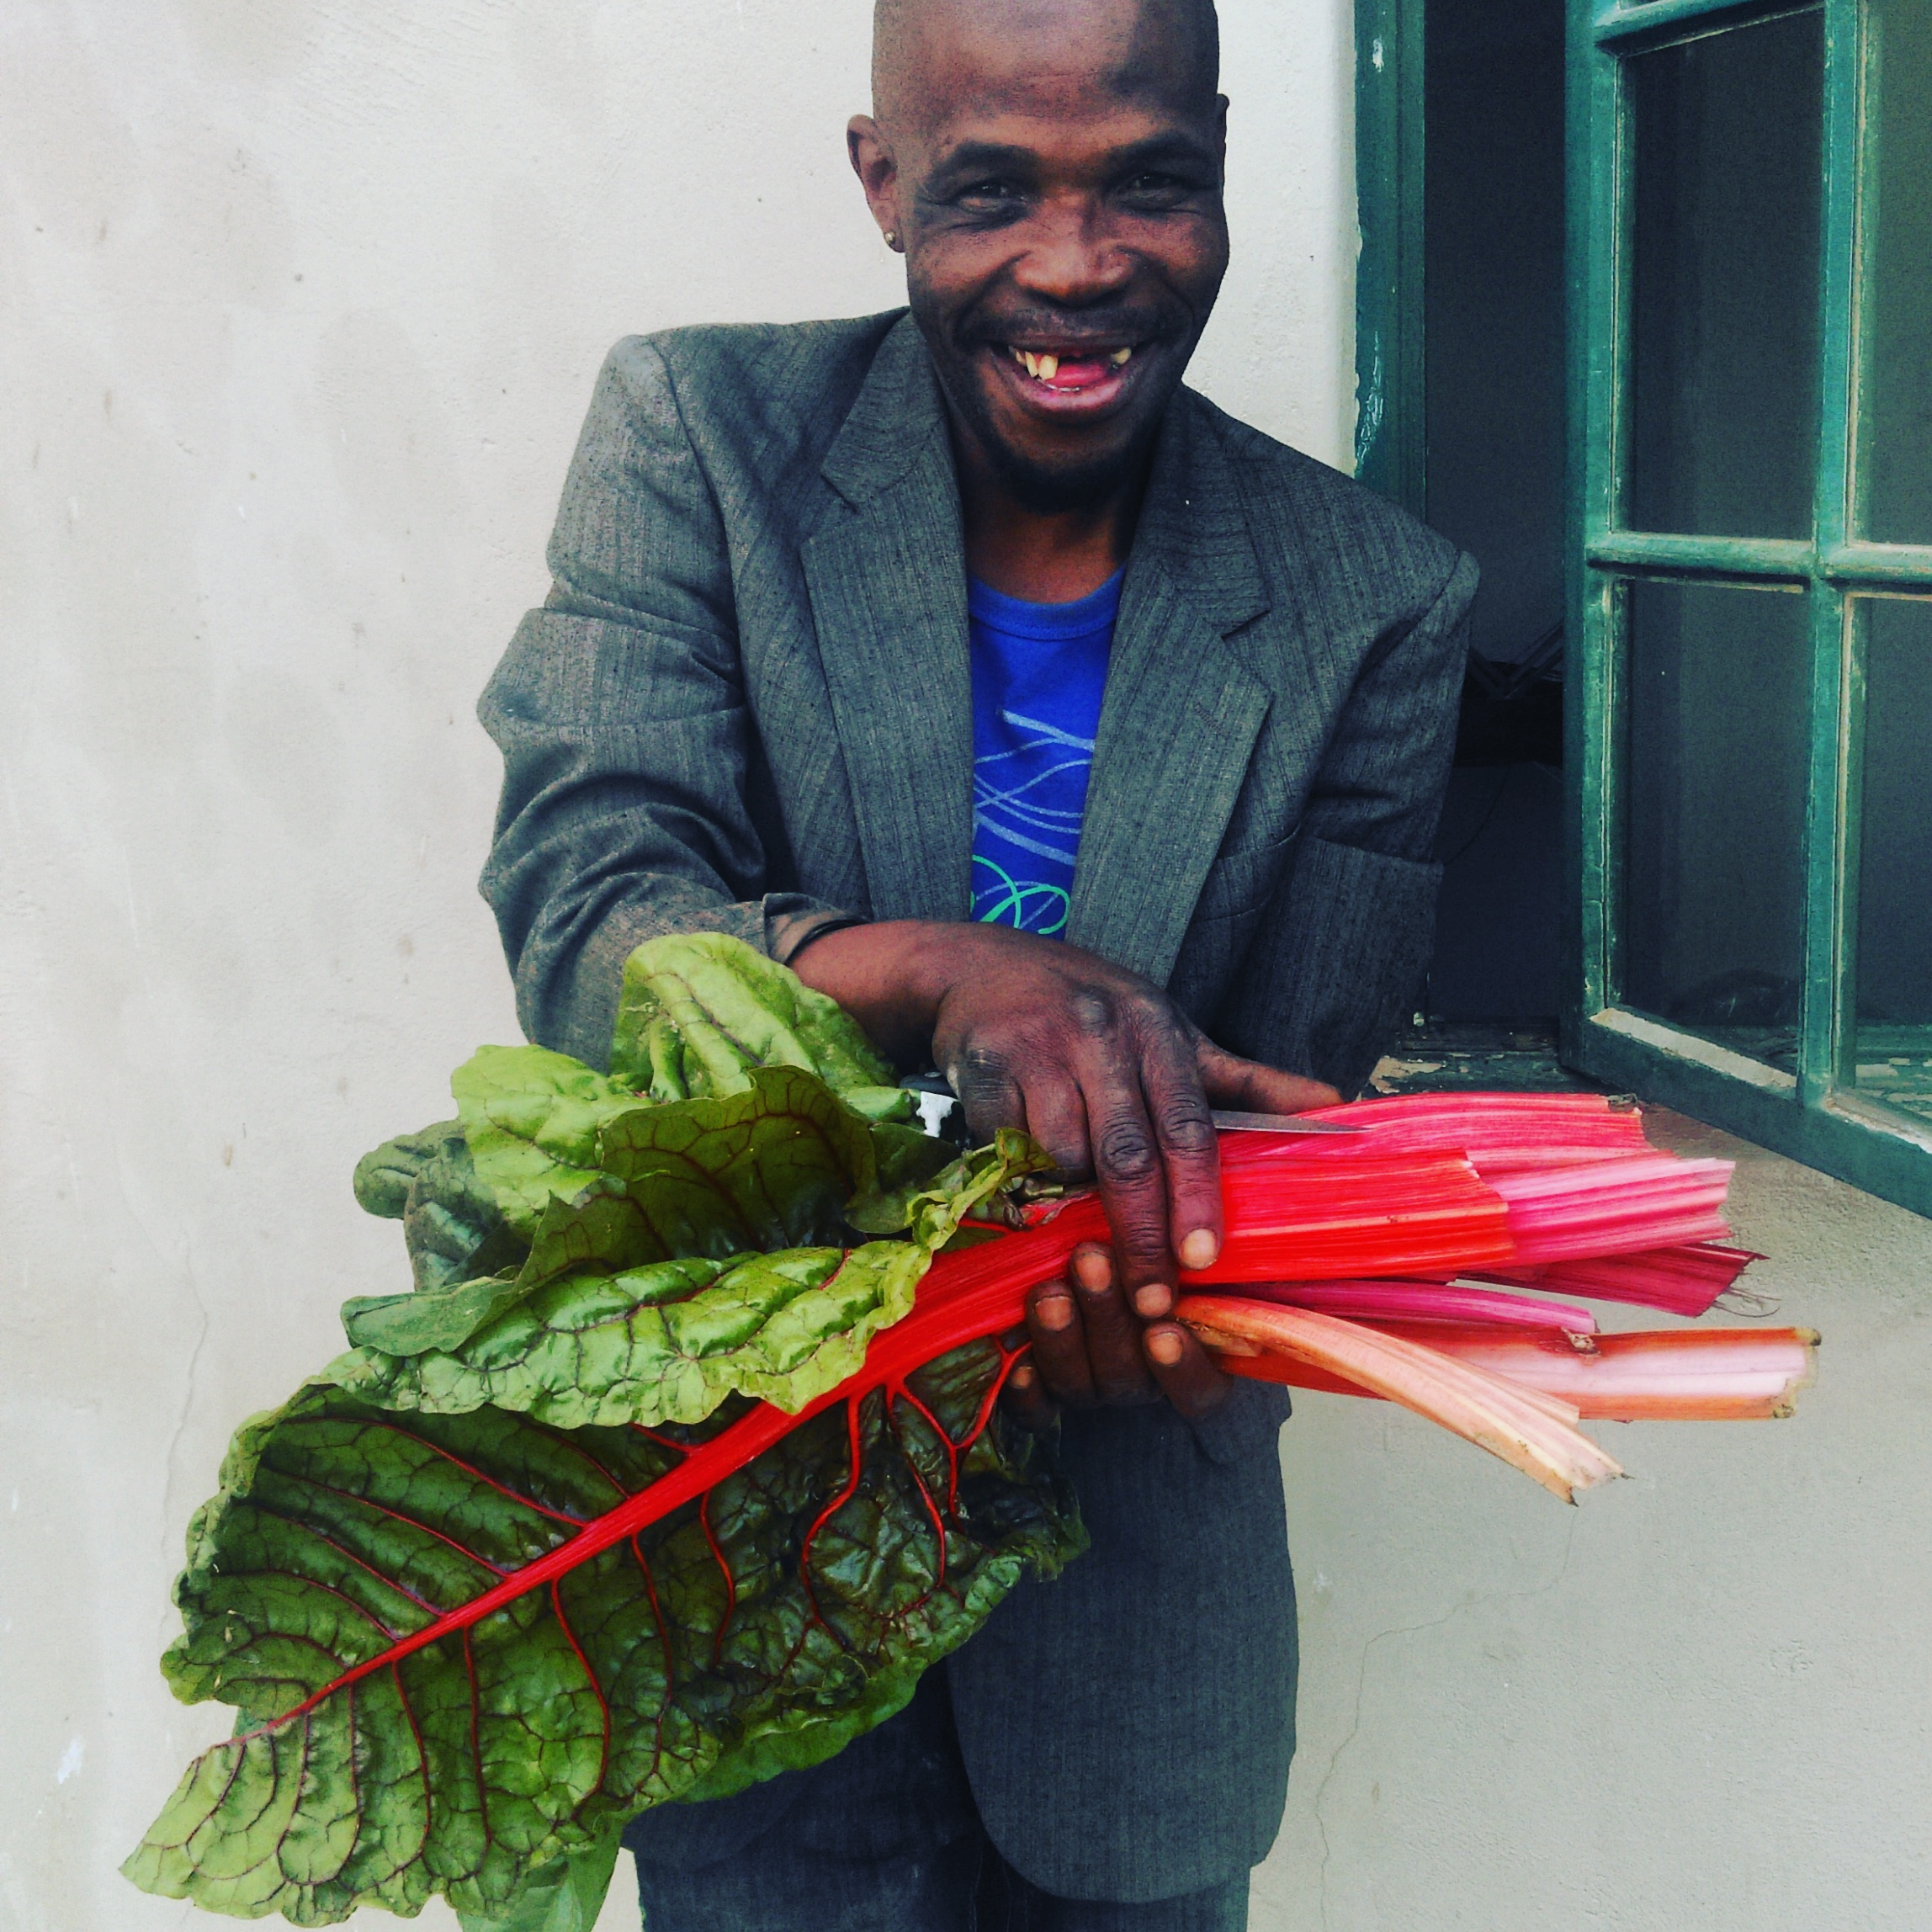 Russell, delighted with his first harvest from the garden.